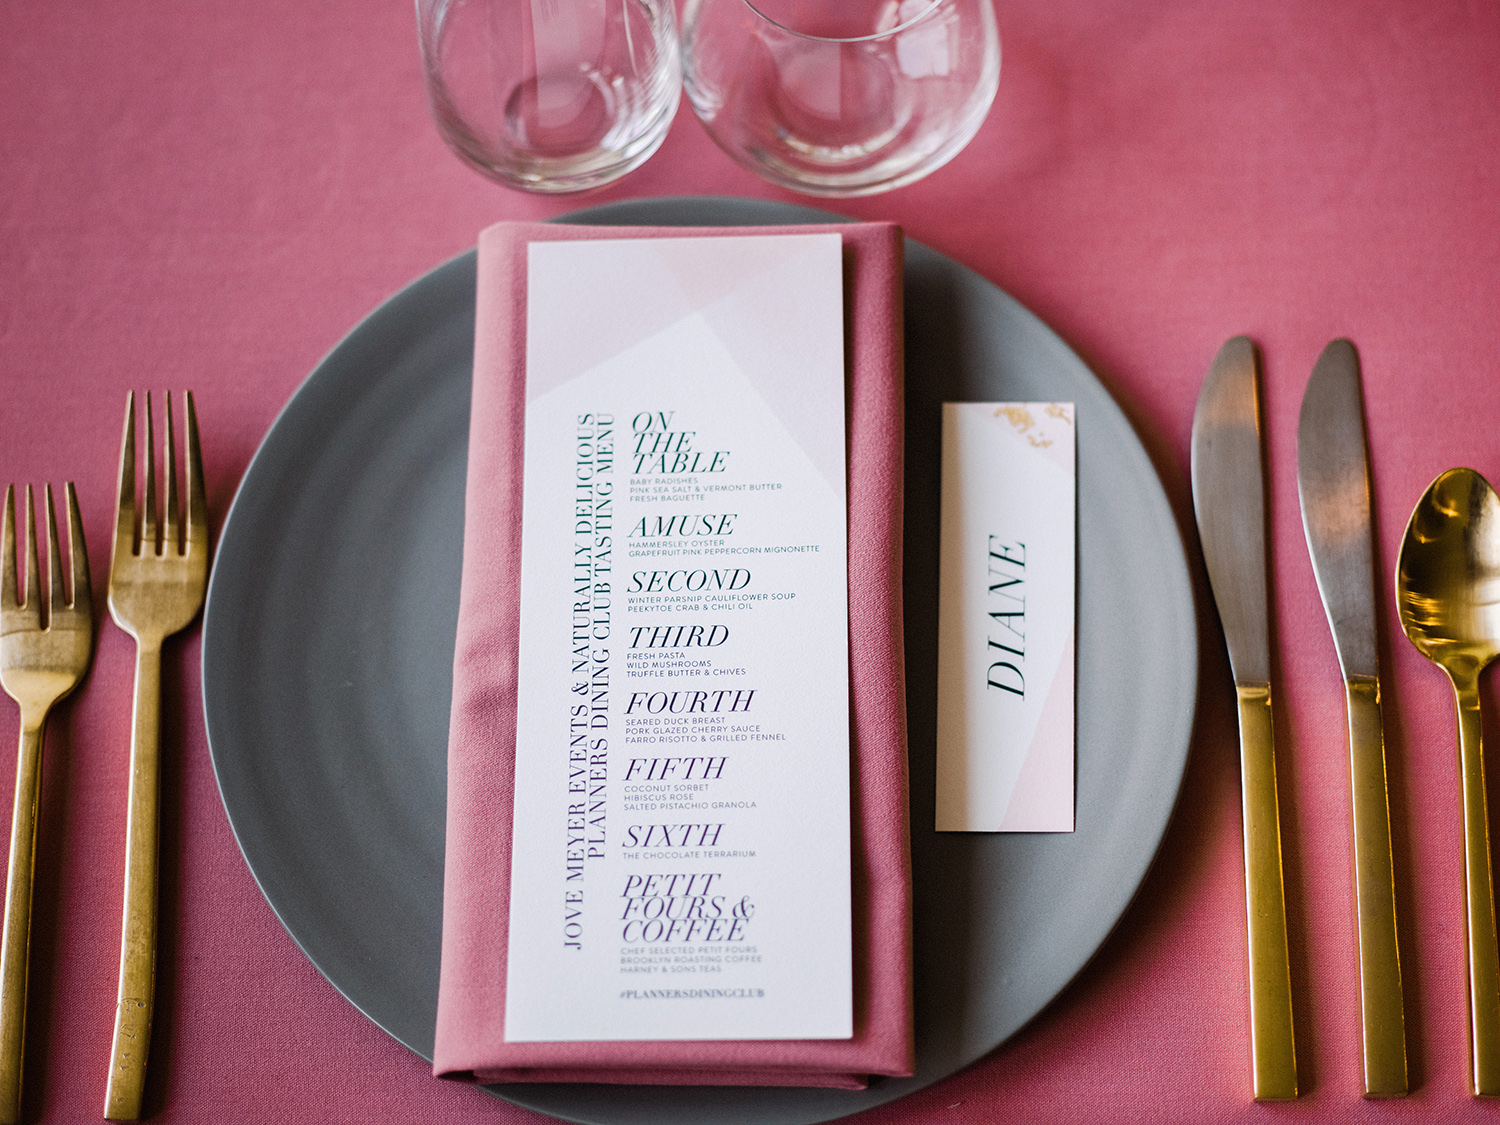 Fourteen-Forty-Planners Dining Club - Jove Meyer - Naturally Delicious - Pink Party 2.jpg